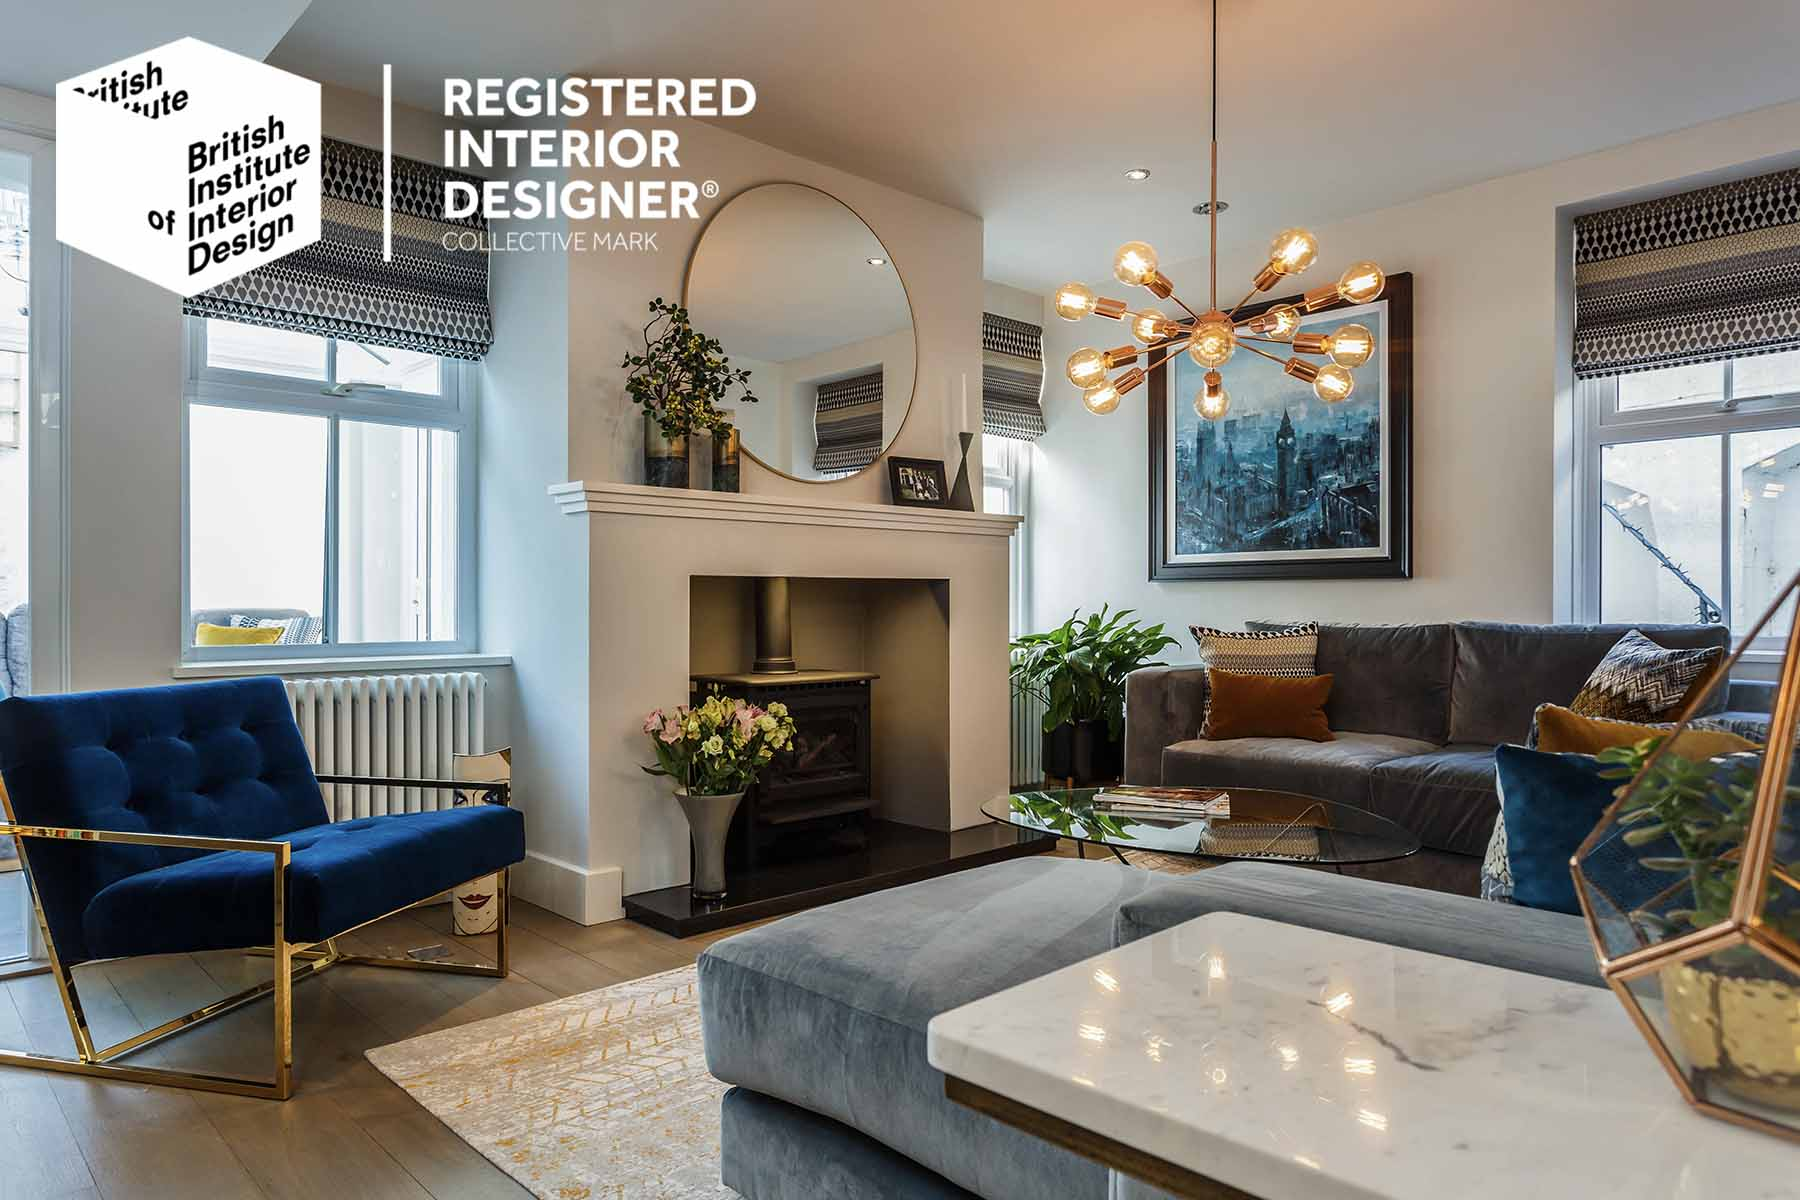 Image for Susie Pfeiffer Becomes 'British Institute of Interior Design' Registered Interior Designer®